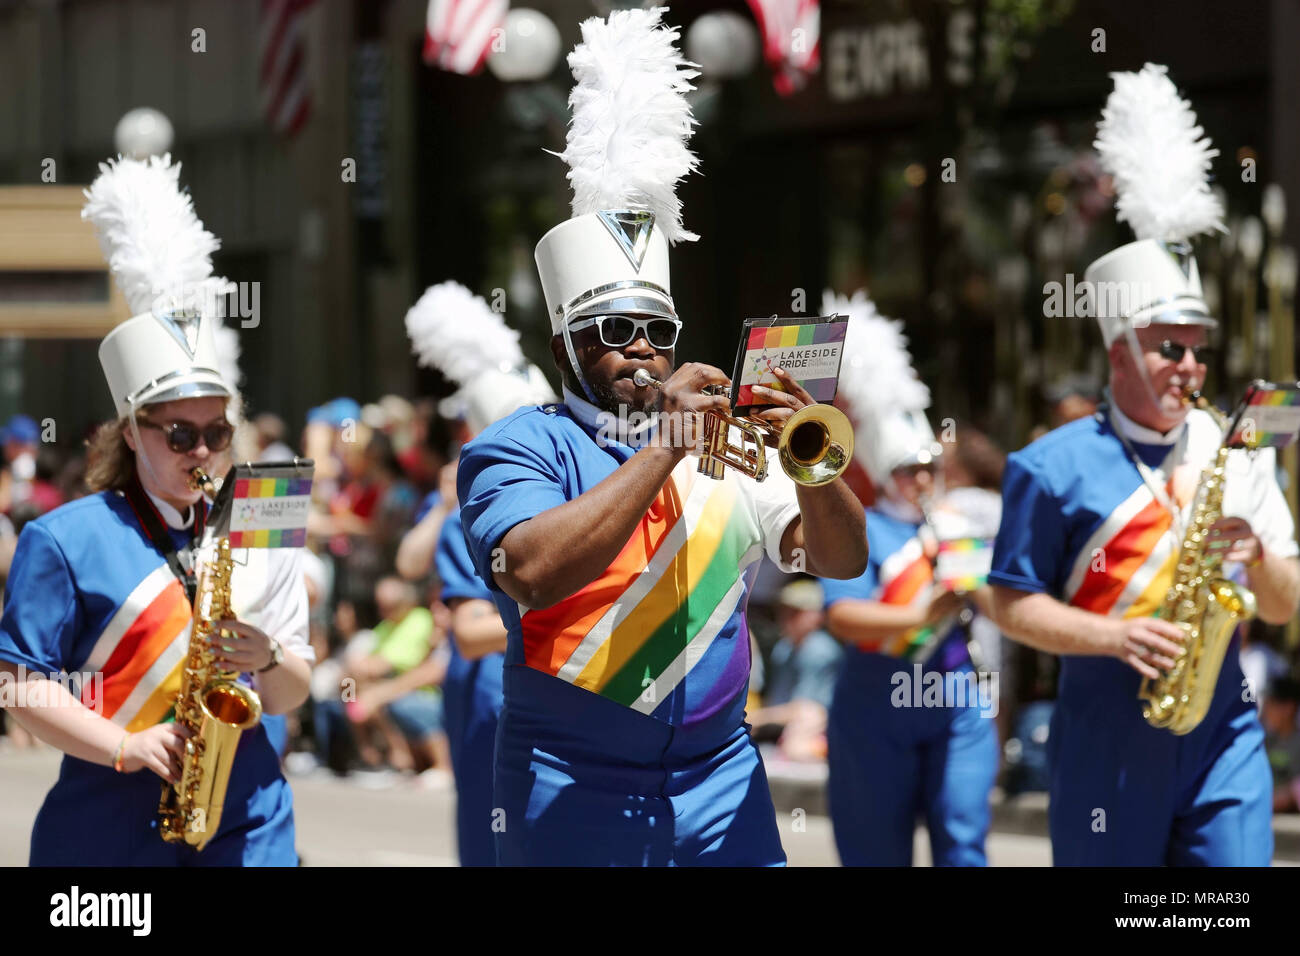 Chicago, USA. 26th May, 2018. Participants take part in the Memorial Day Parade in Chicago, the United States, on May 26, 2018. The Memorial Day is a federal holiday in the United States for remembering people who died in the country's armed forces. Credit: Wang Ping/Xinhua/Alamy Live News Stock Photo